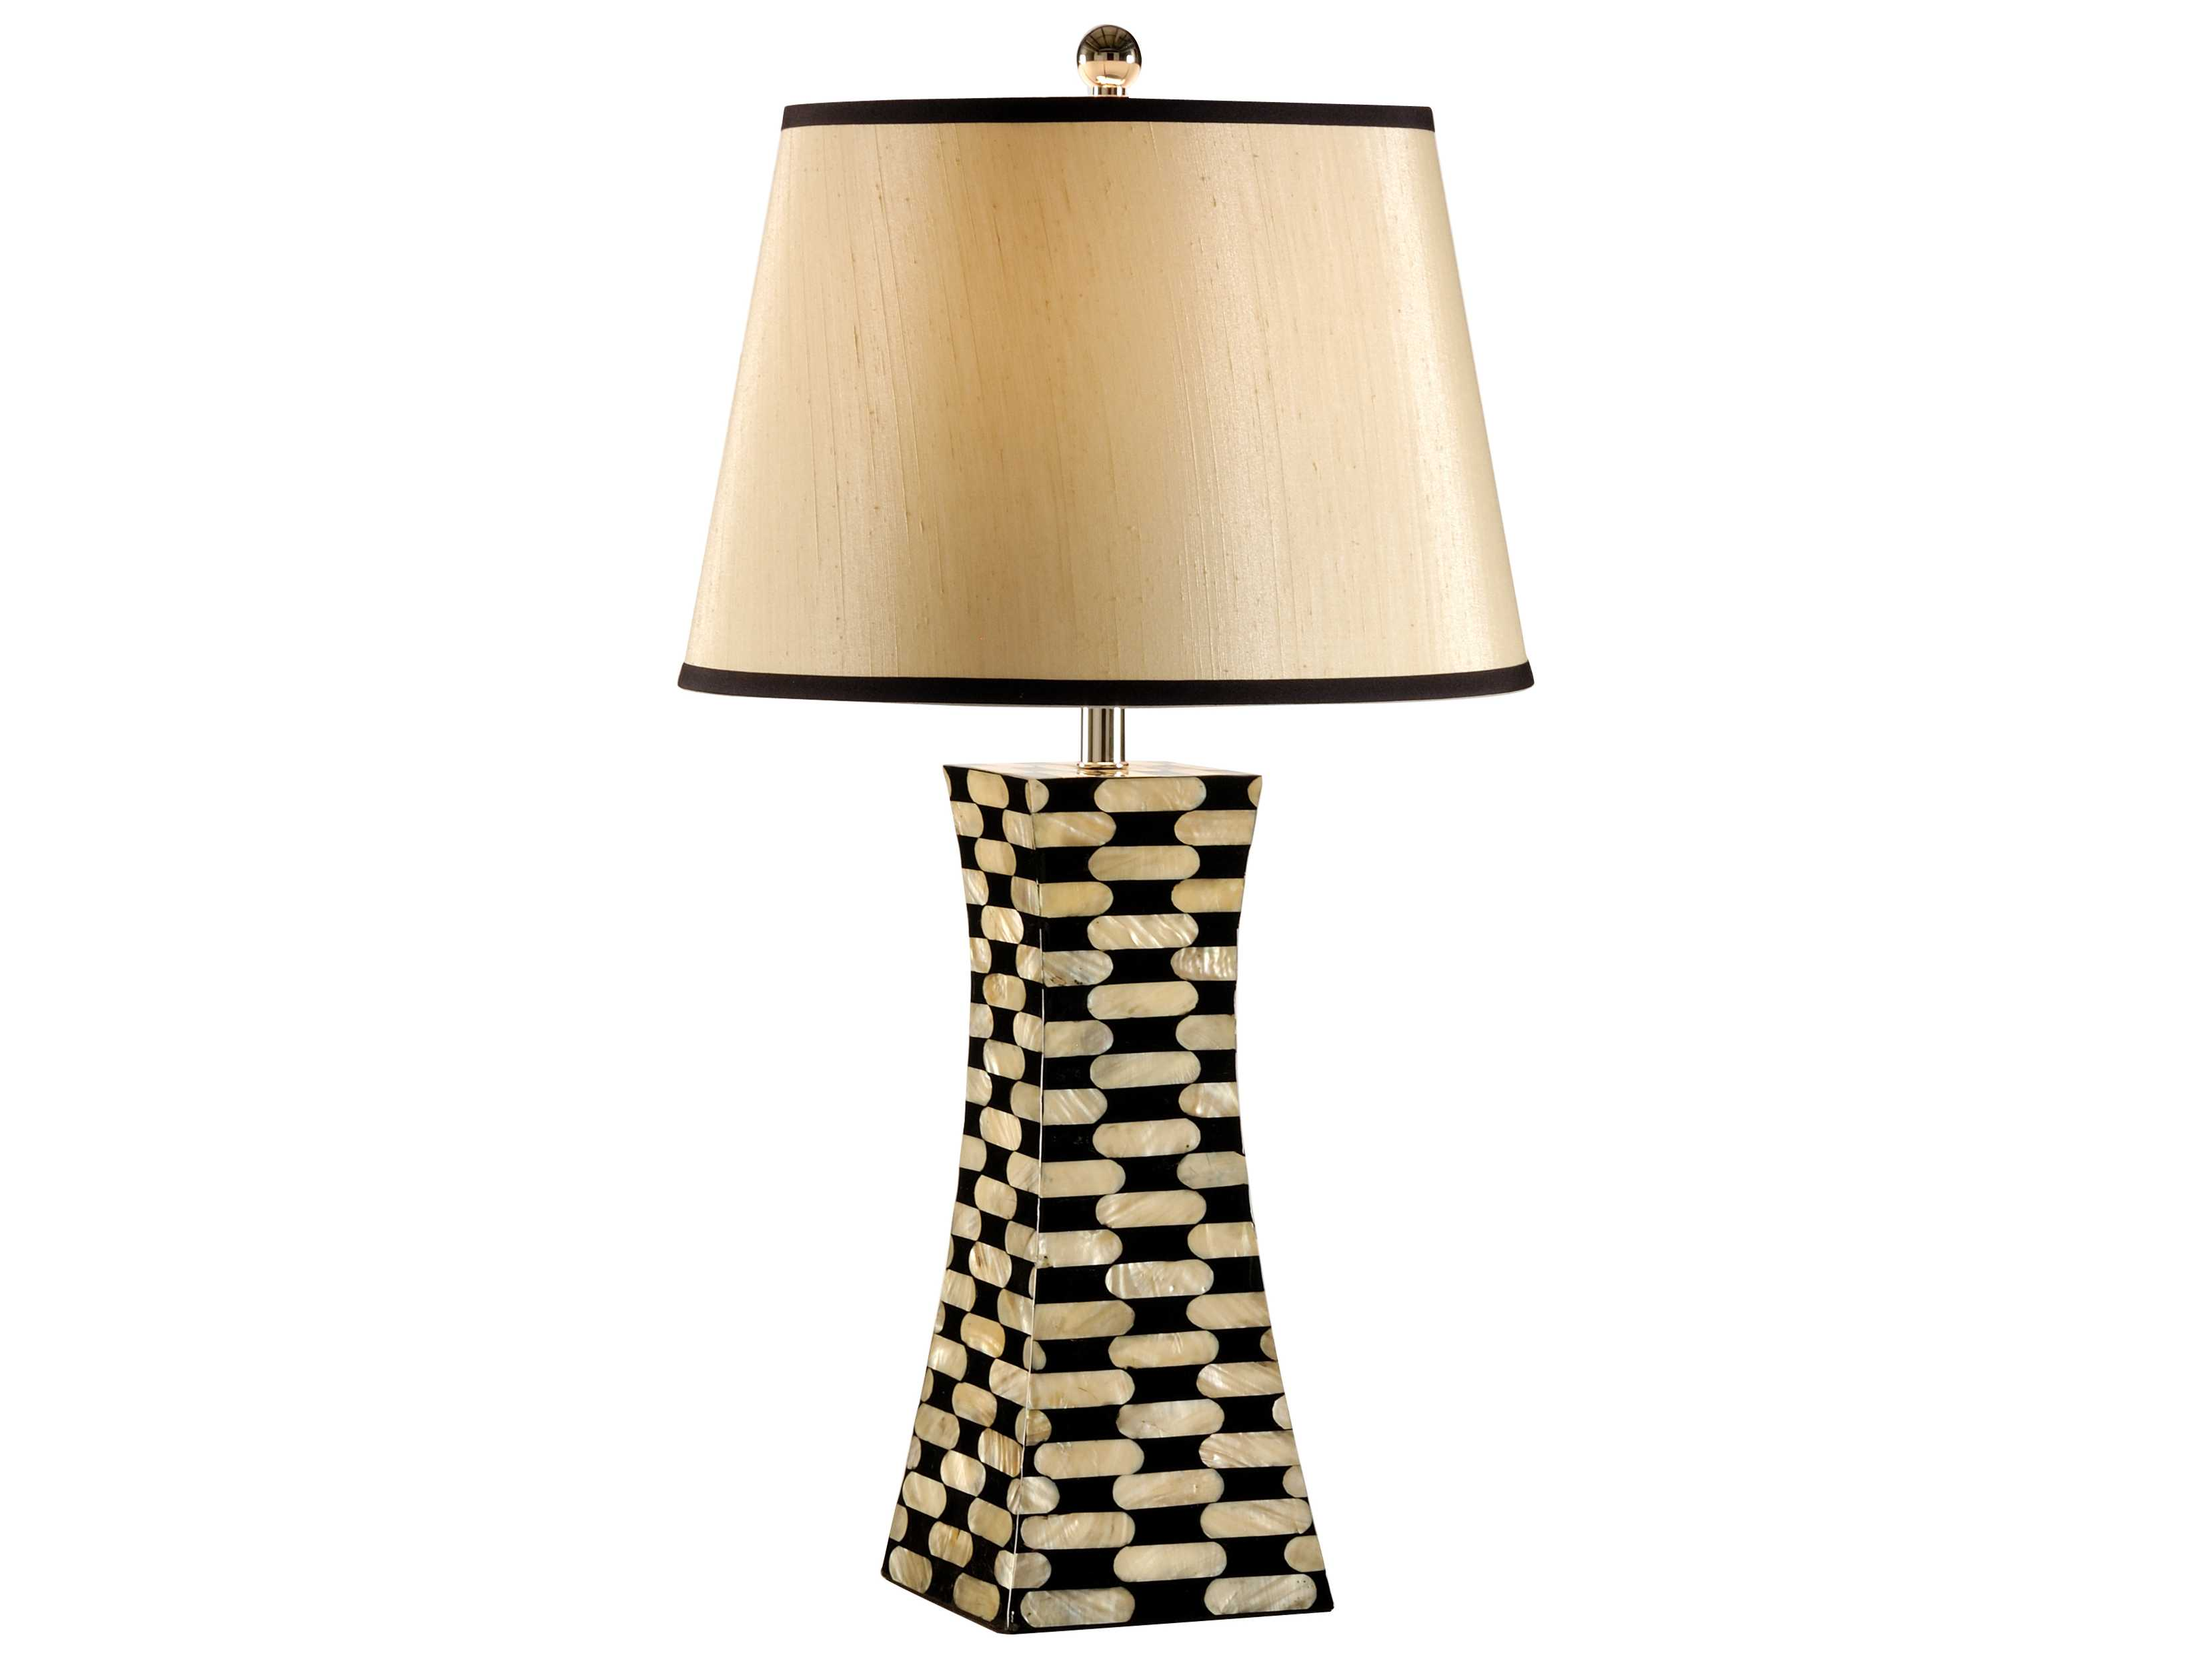 Wildwood Lamps Mother Of Pearl Inlaid Lacquer Body Pearls